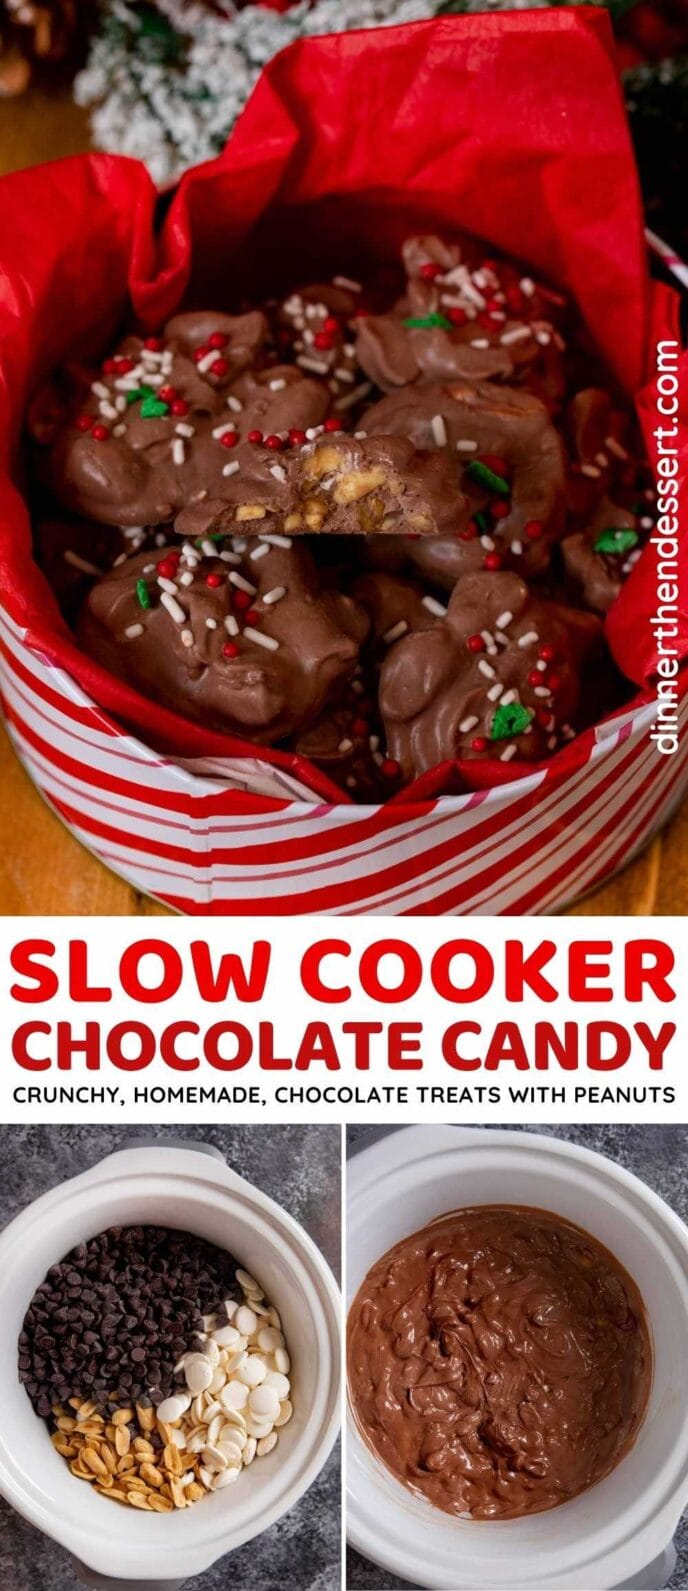 Slow Cooker Chocolate Candy collage